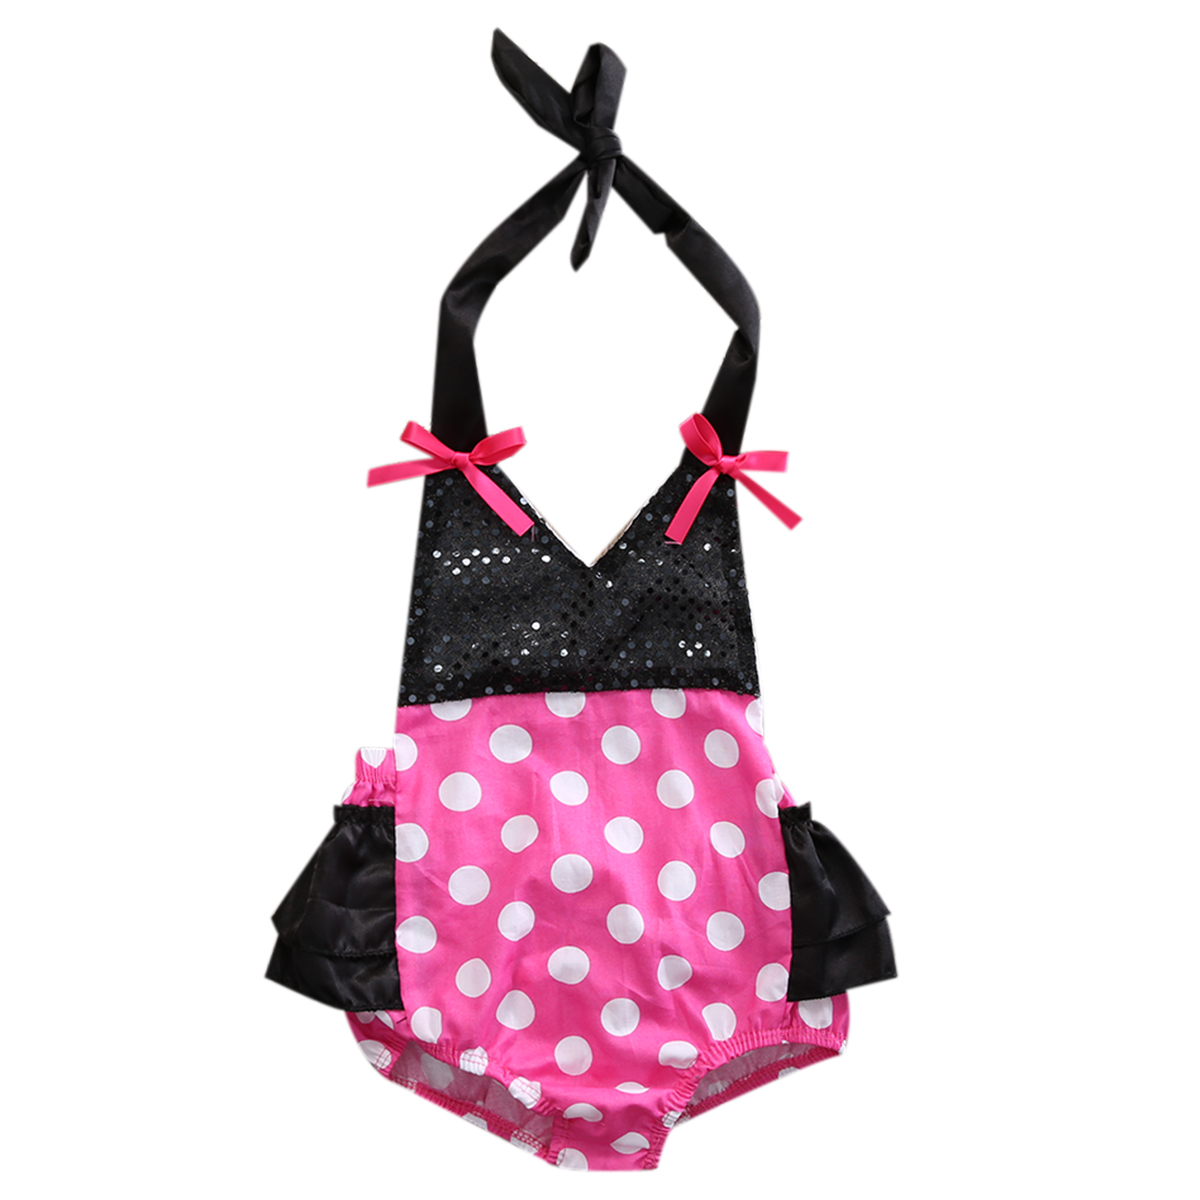 2018 Infant Baby Girls Pink Polka Dots Bodysuit Babies Gir Halter Backless Outfits Sunsuit Clothes